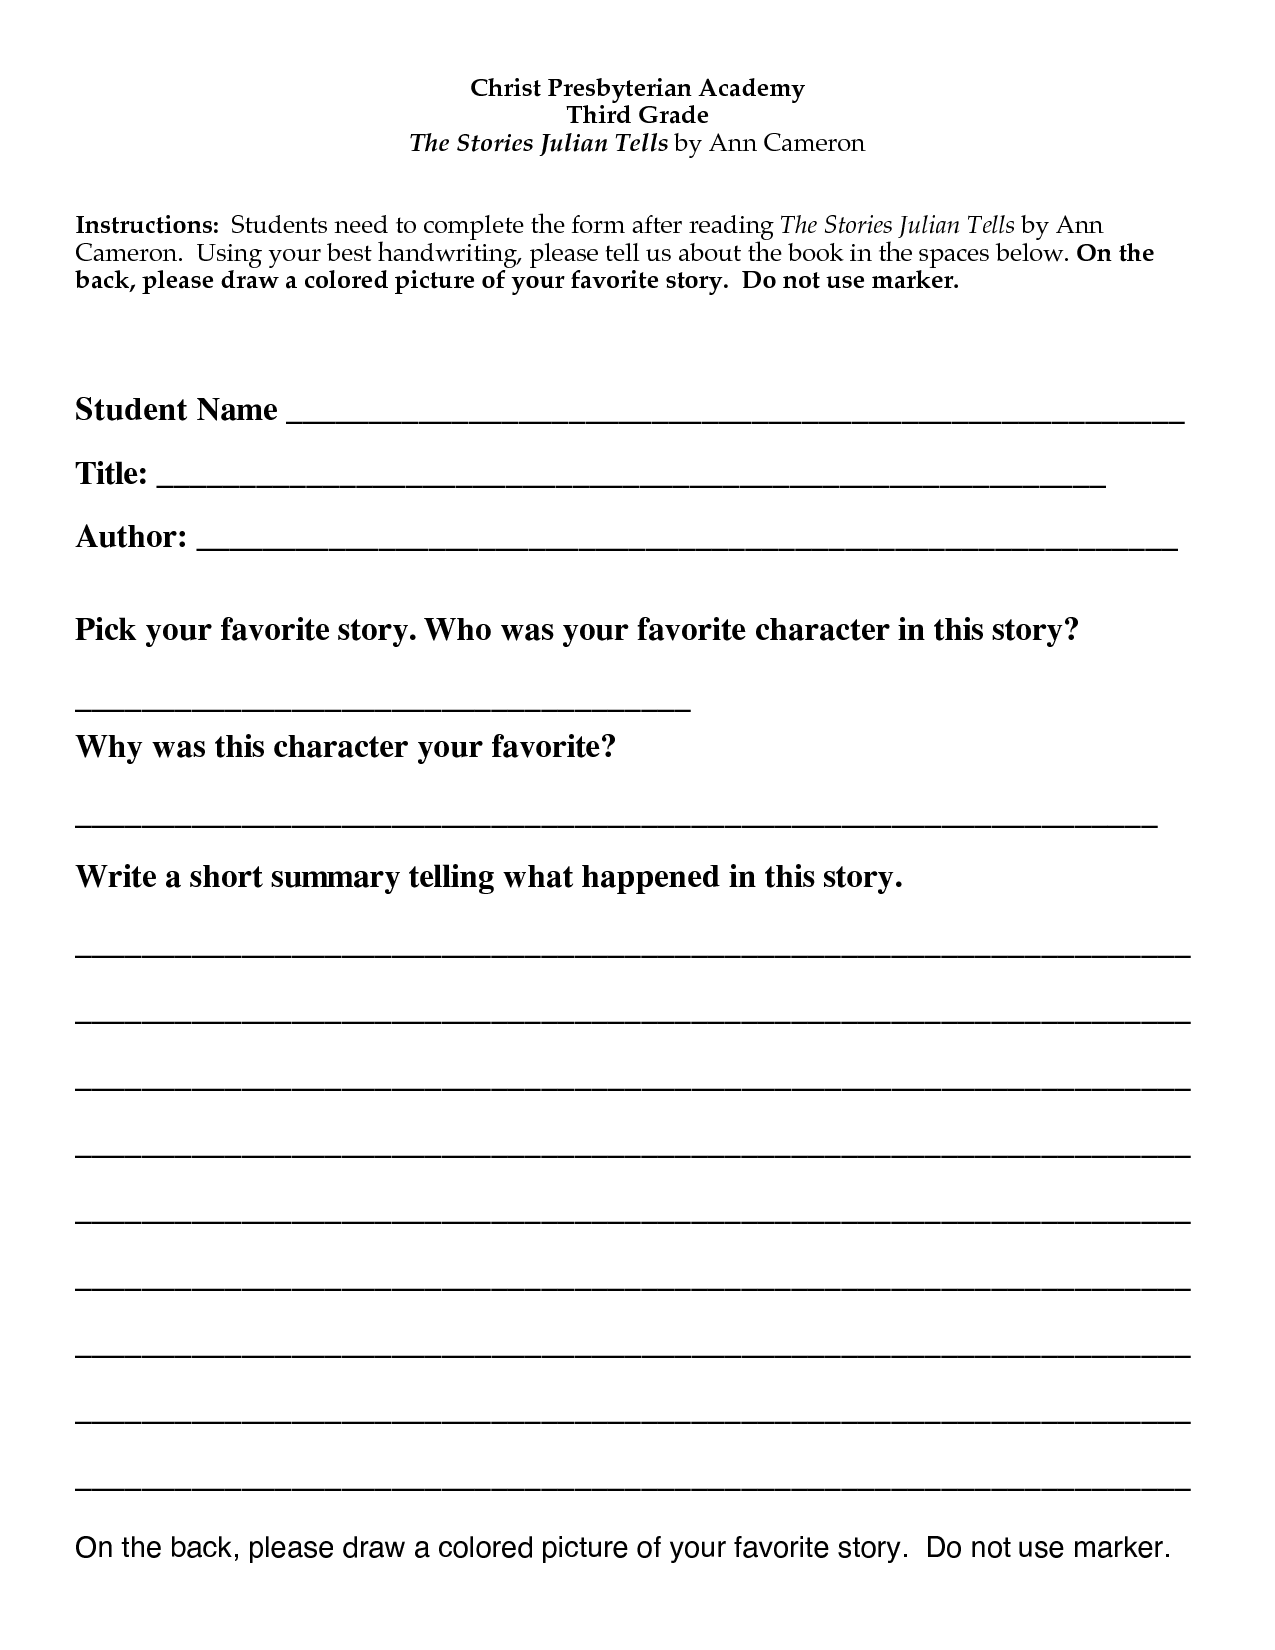 first grade book report form psychology report example introduction writing papers in apa format 6th edition